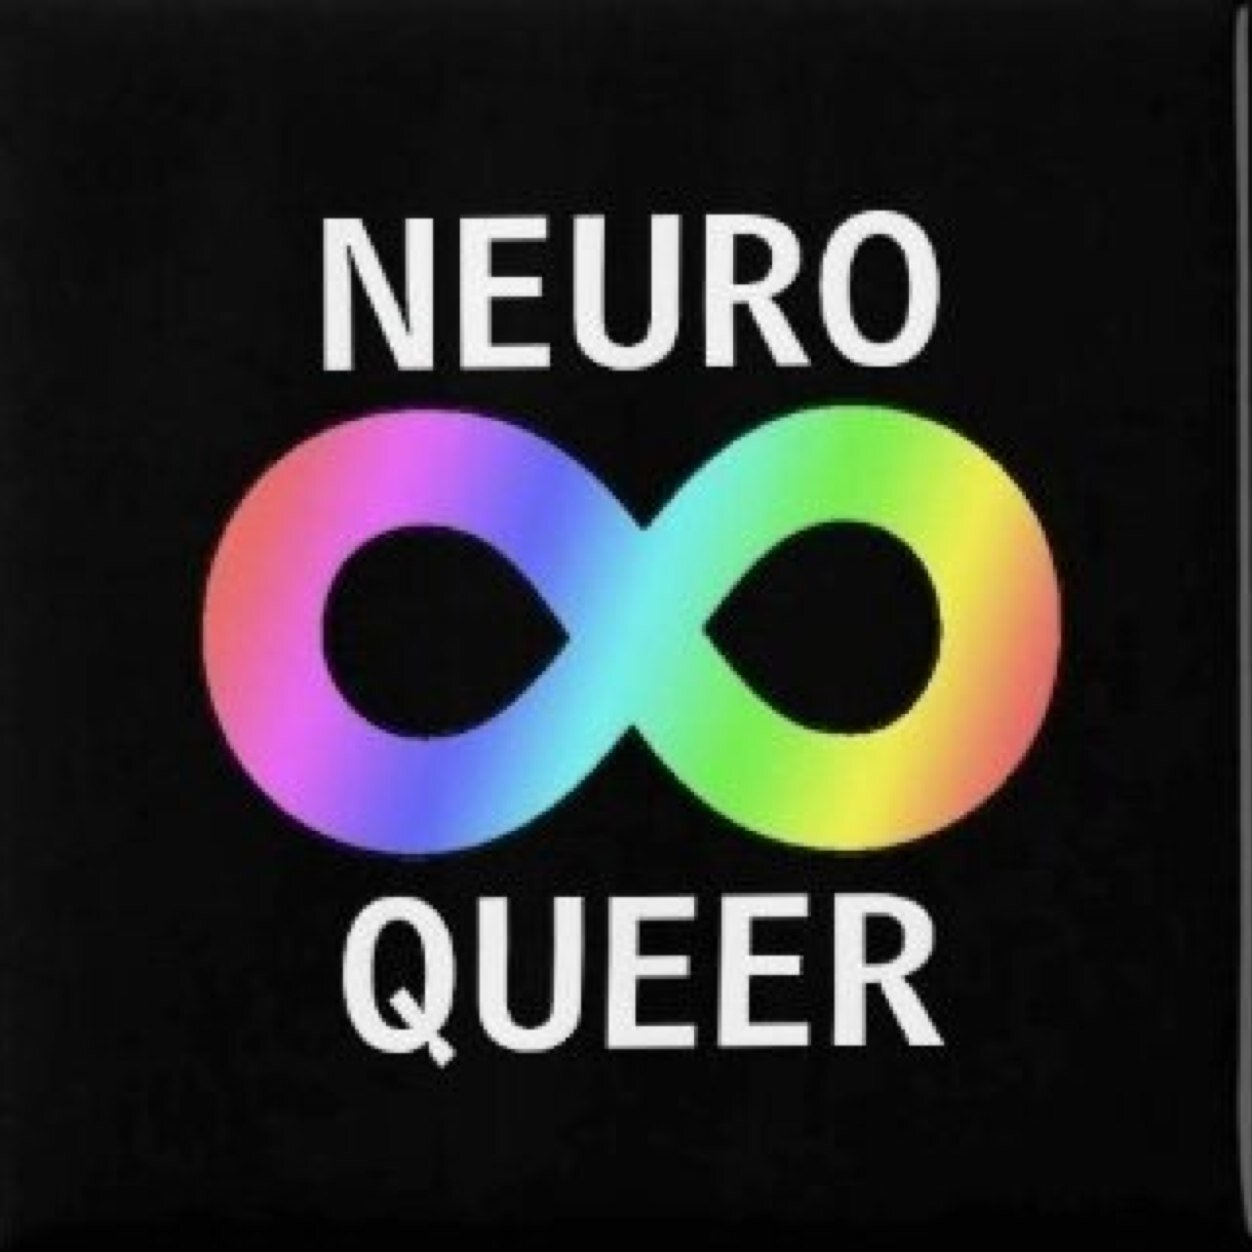 What Being Neuroqueer Means To Me